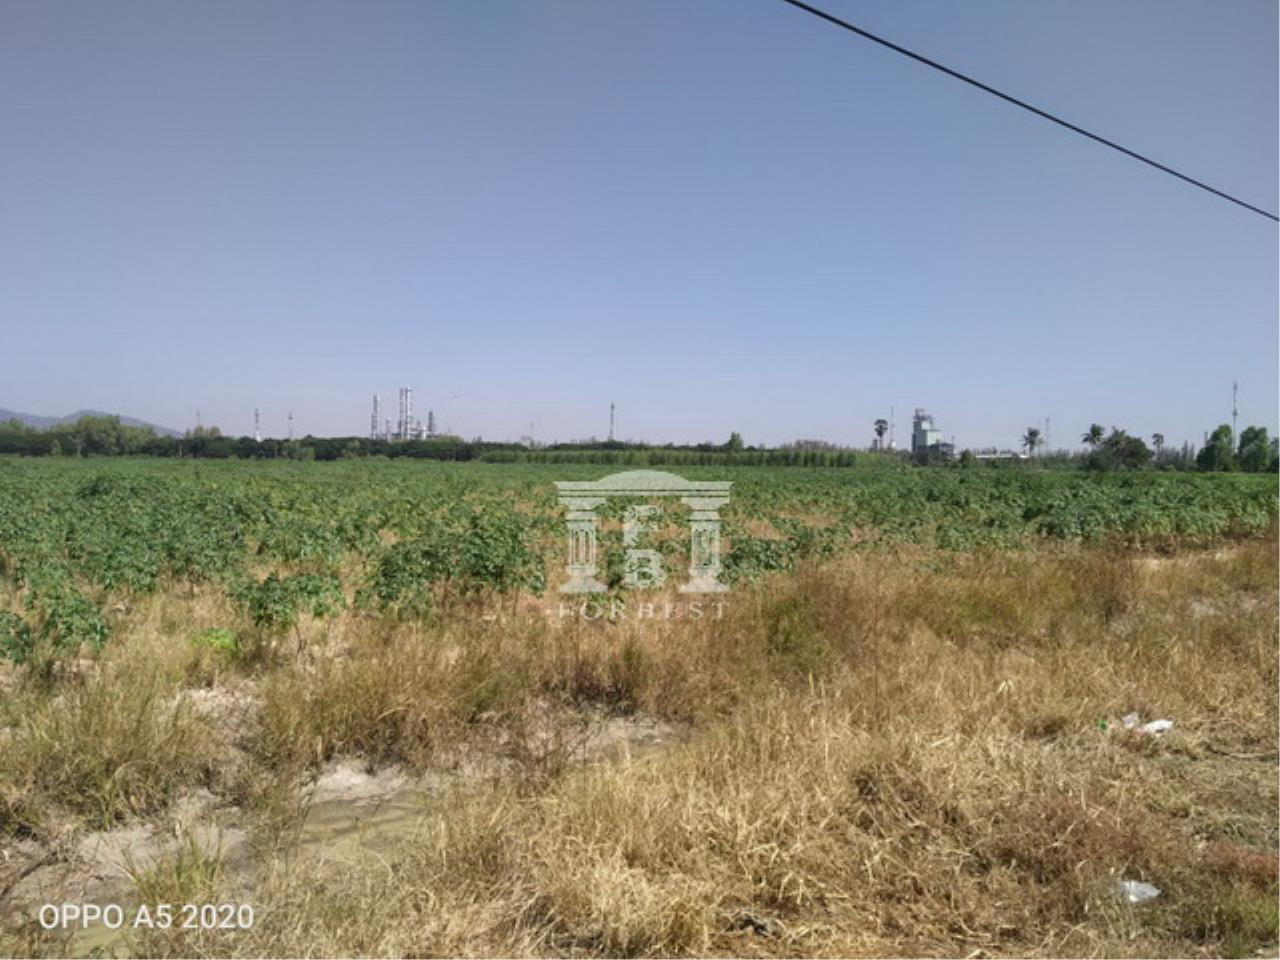 Forbest Properties Agency's 90180 - Land for sale, Plot size 60-1-78.8 Rai, Ban Chang, Rayong, near Map Ta Phut Industrial Estate. 2